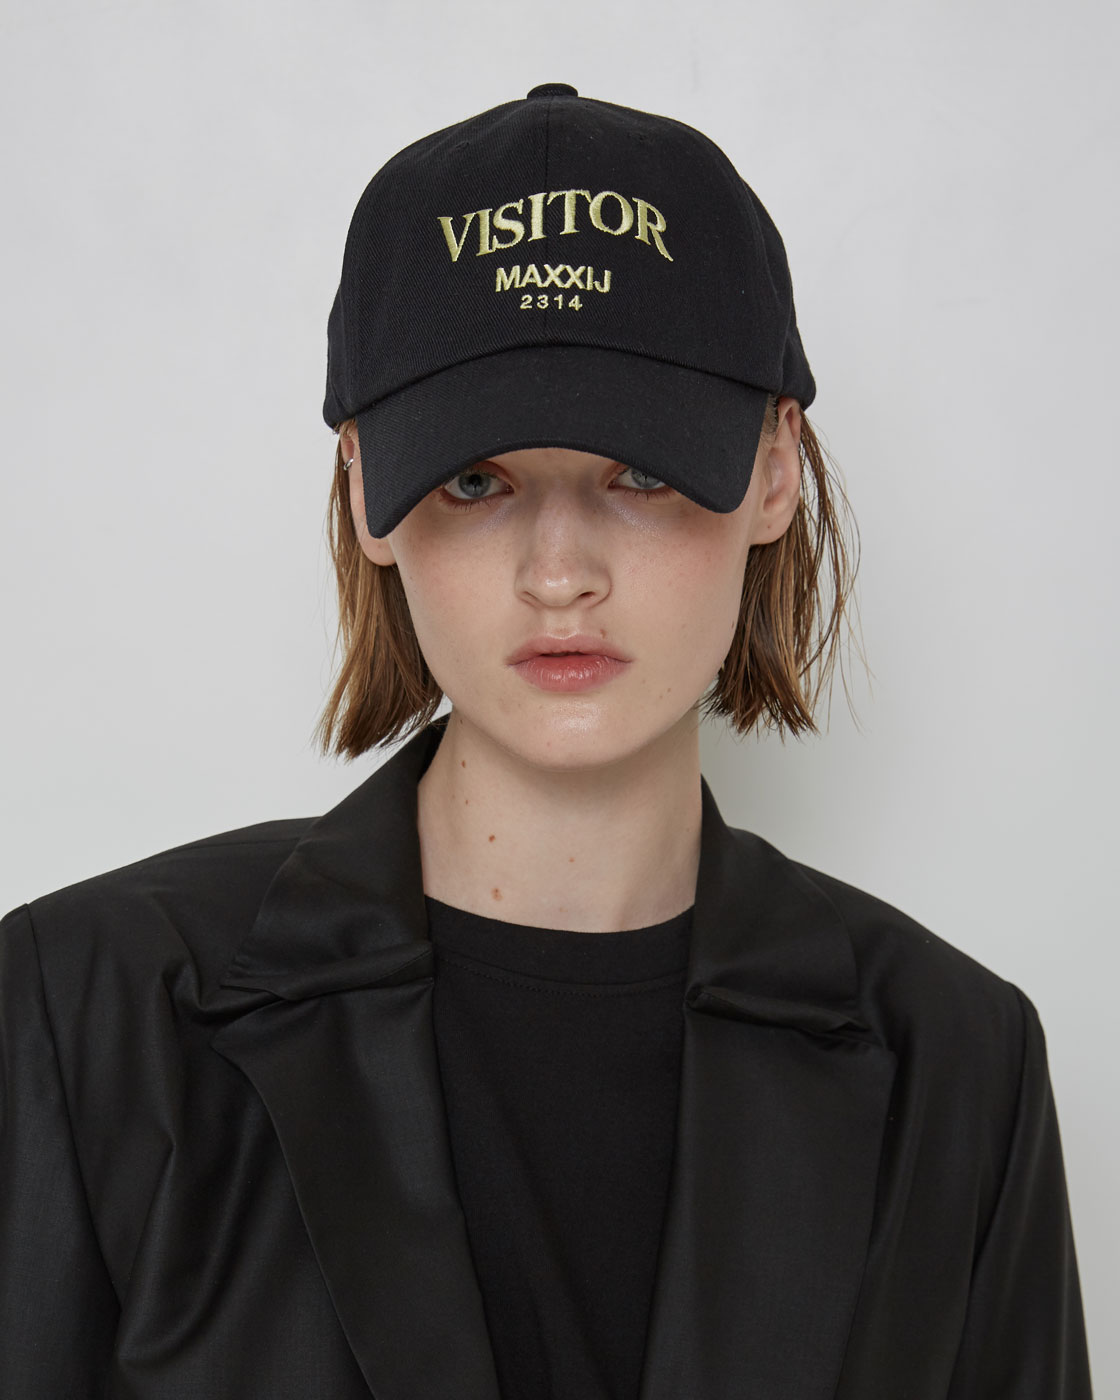 Black 'VISITOR' ball cap